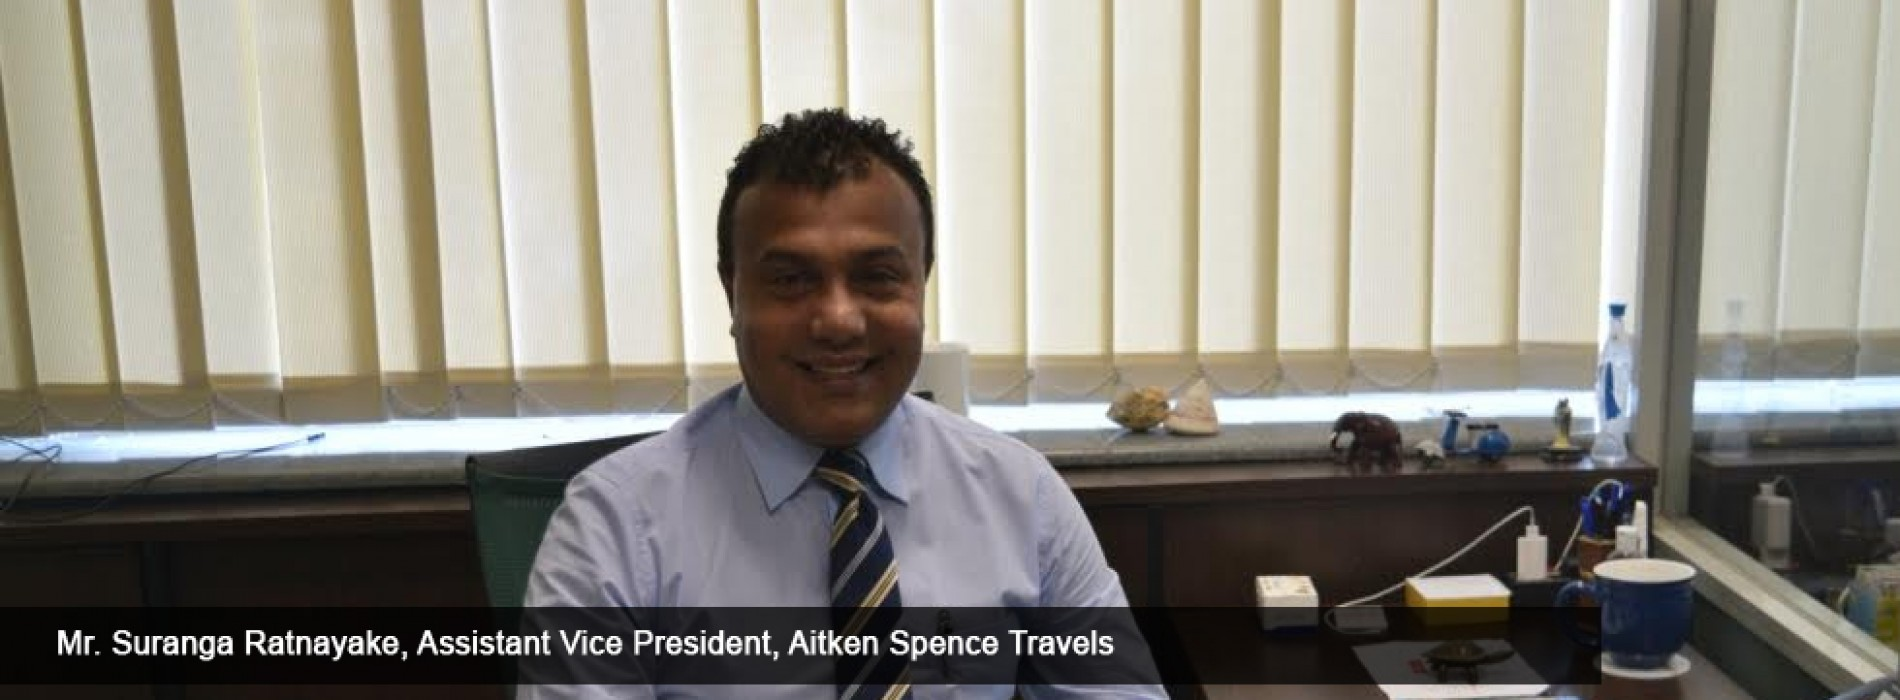 Aitken Spence Travels, Sri Lanka appoints Nijhawan Group as their India Representatives